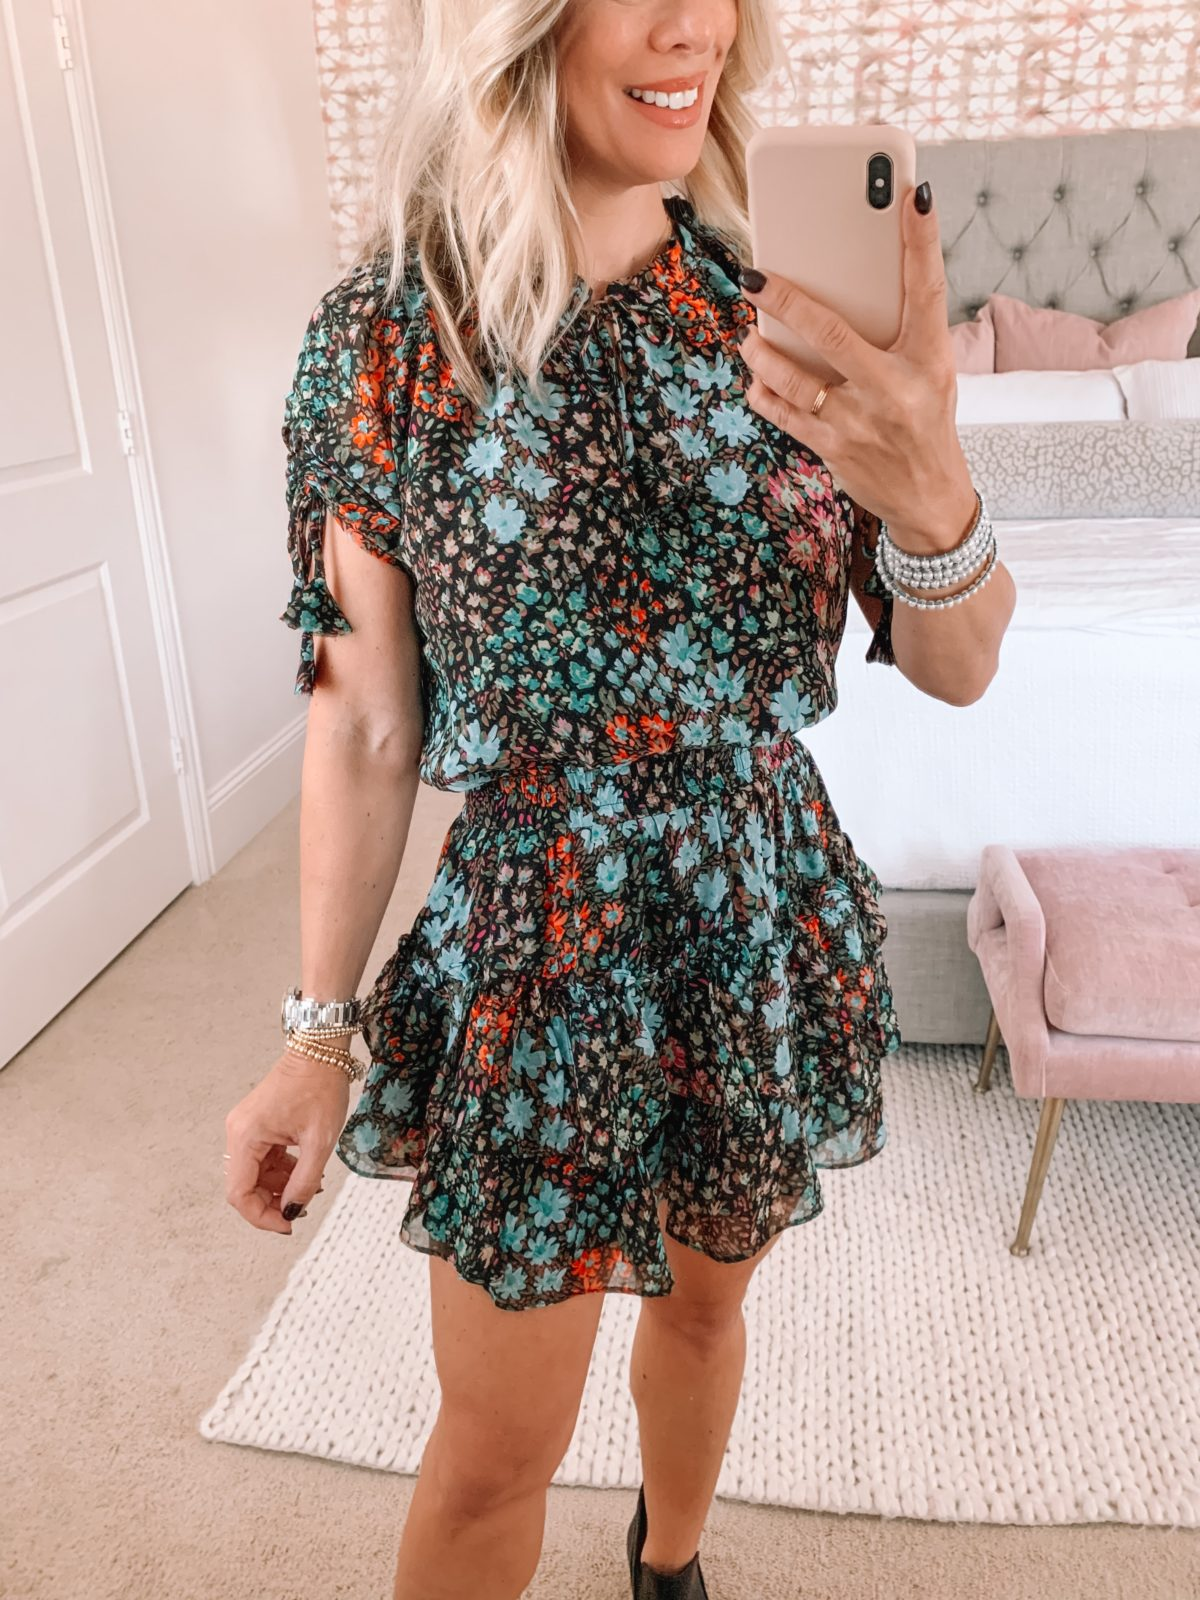 Red Dress Fashion FInds, Dress, Booties